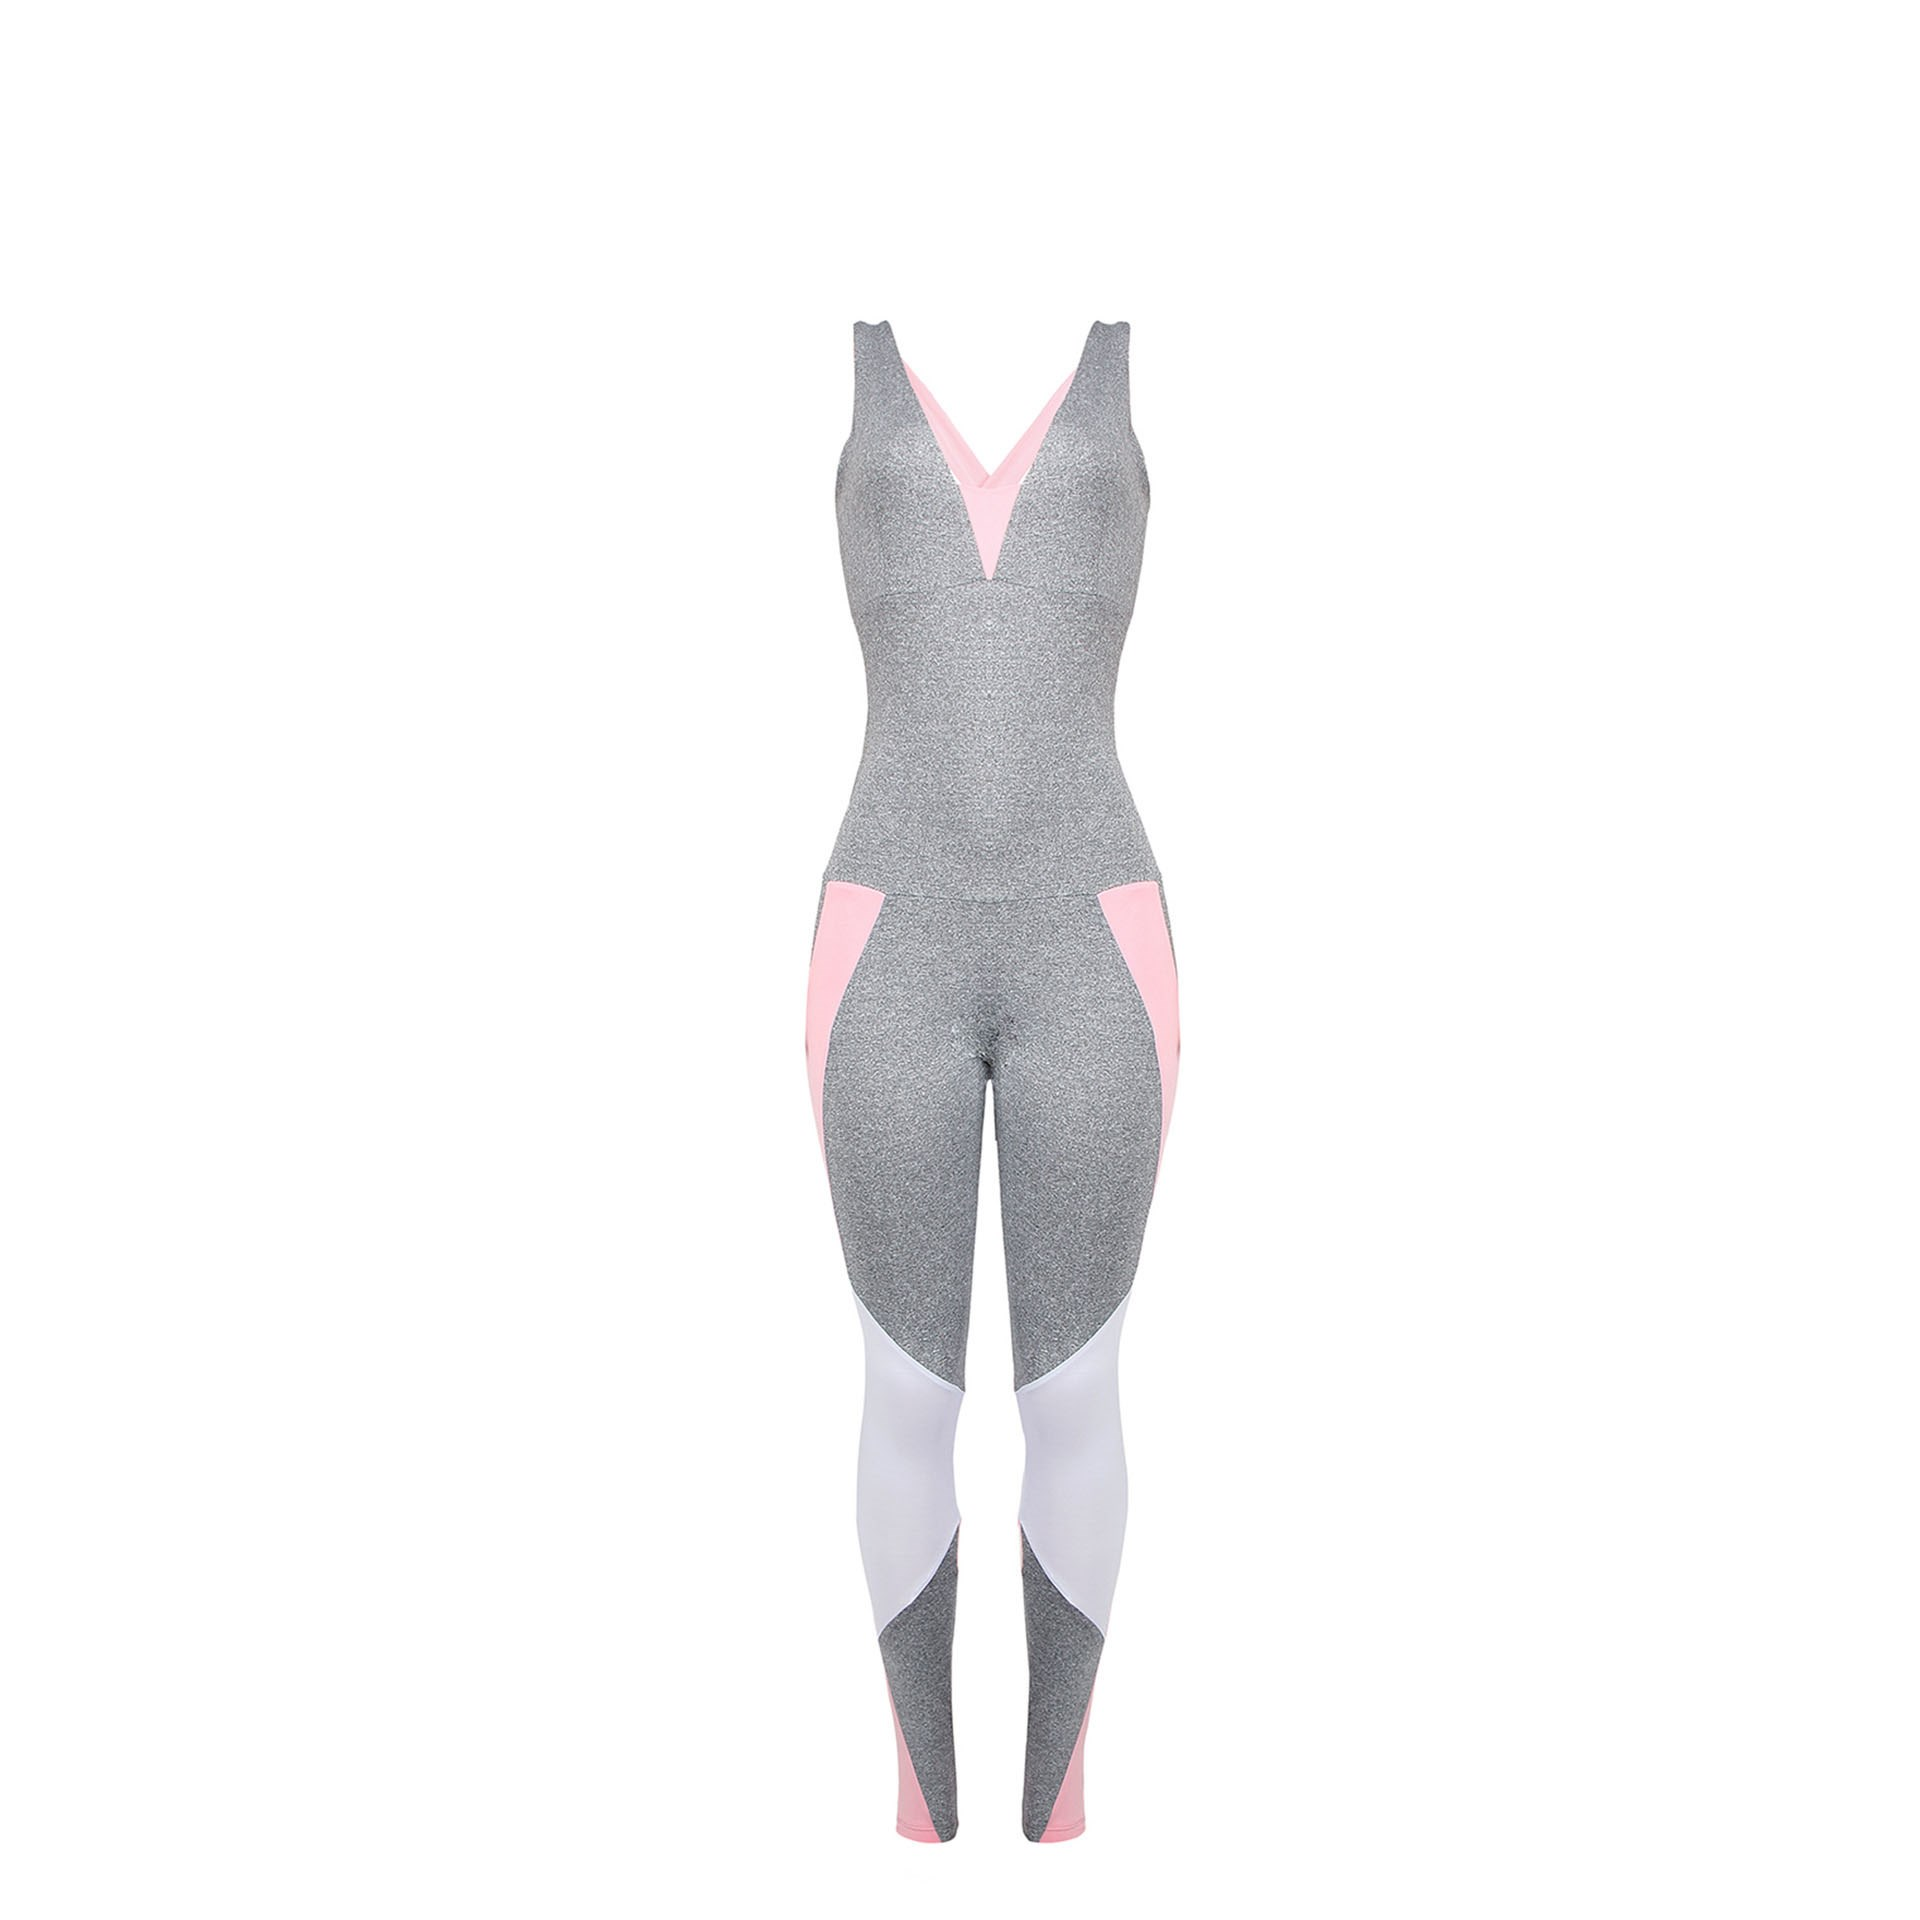 2017 Sexy Summer Ladies Women Suit Set Gyms Fitness Jumpsuit Sporting Slim Backless Cross Bandage Playsuit Bodysuit Tracksuit